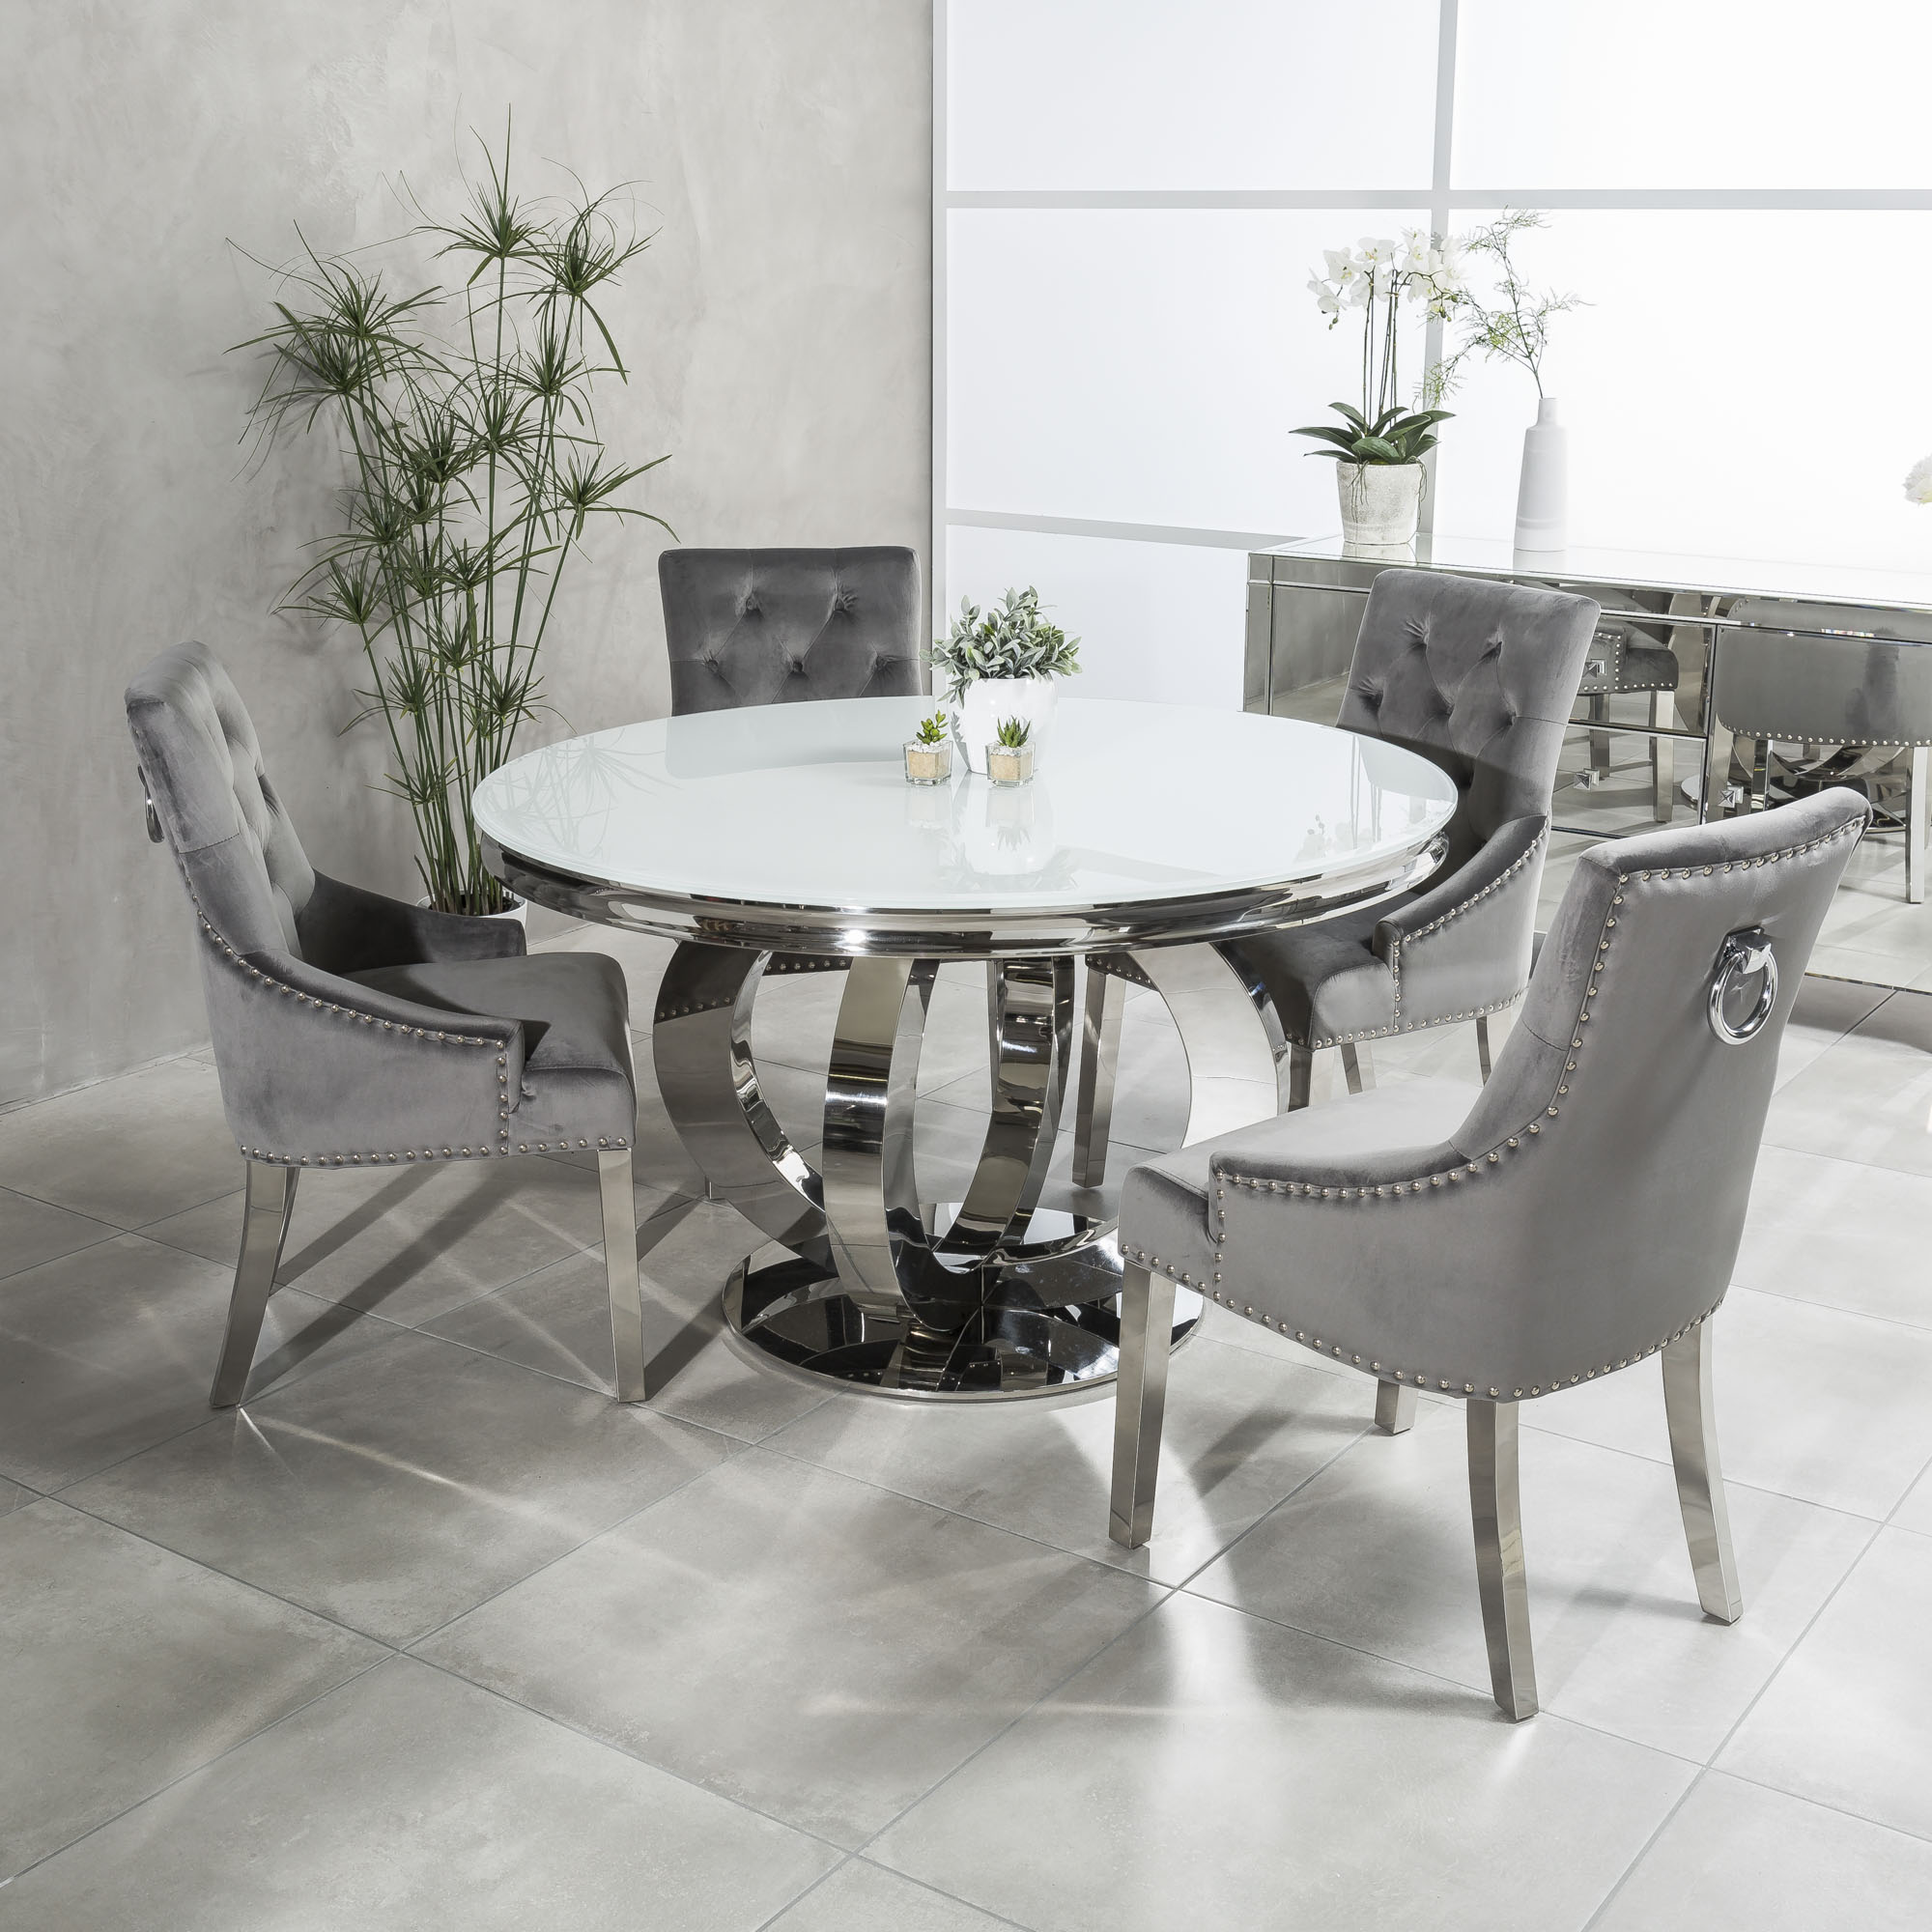 1 3m Circular Polished Steel White Glass Dining Table Set With 4 Grey Brushed Velvet Dining Chairs Grosvenor Furniture